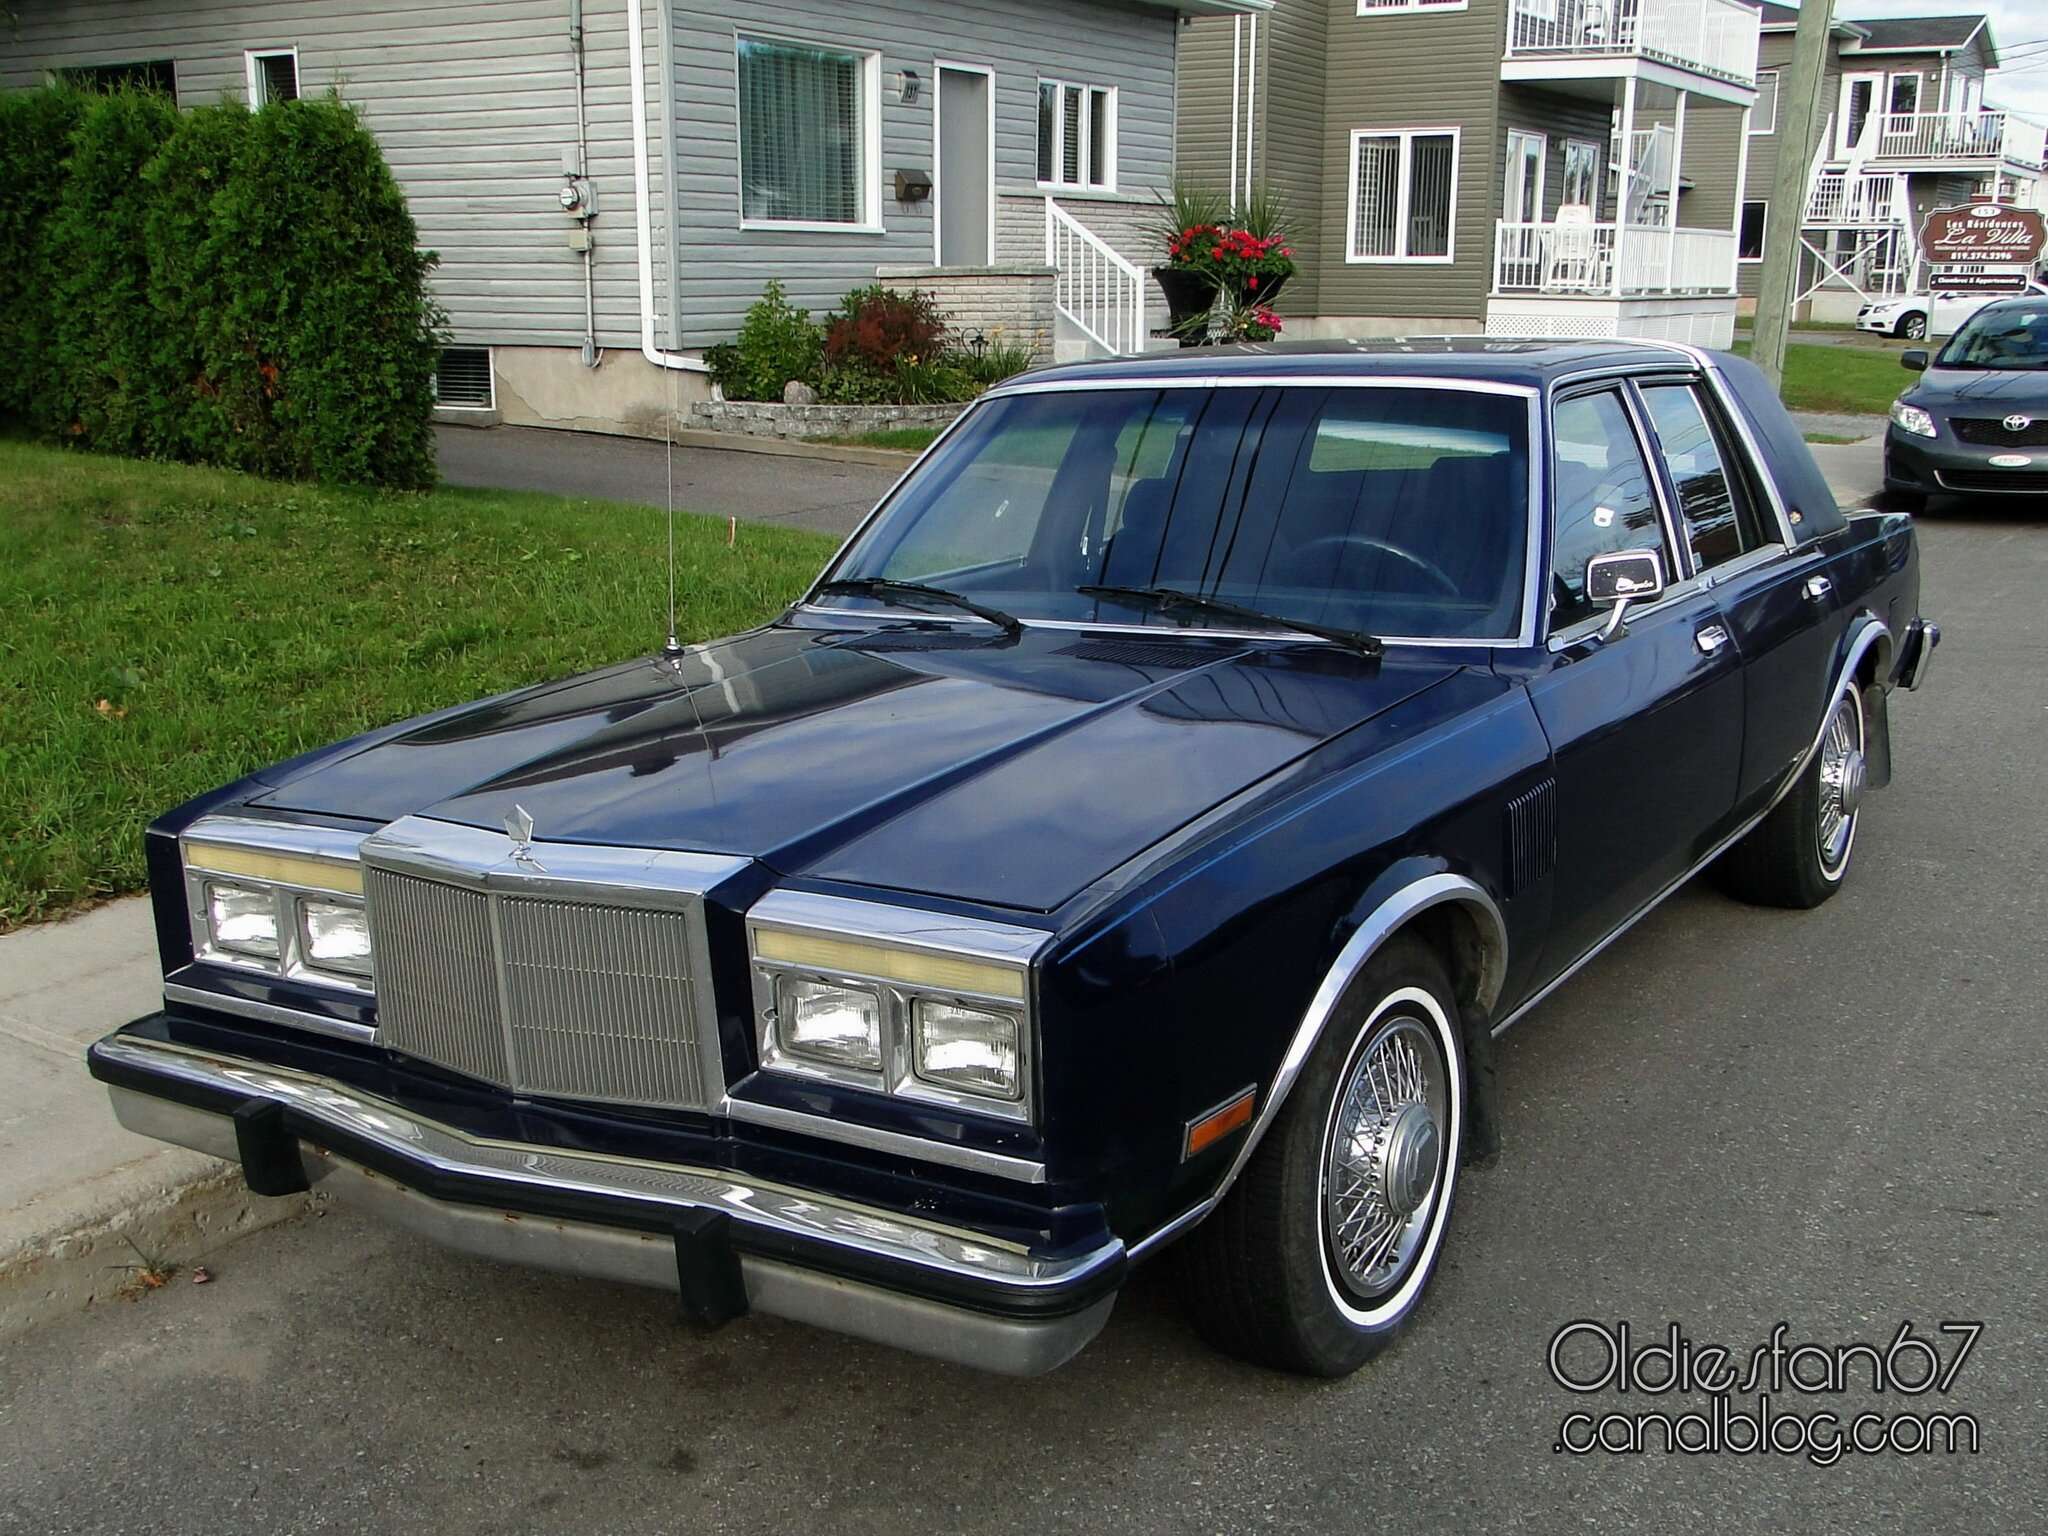 Chrysler Fifth Avenue 1983 1989 Oldiesfan67 Quot Mon Blog Auto Quot